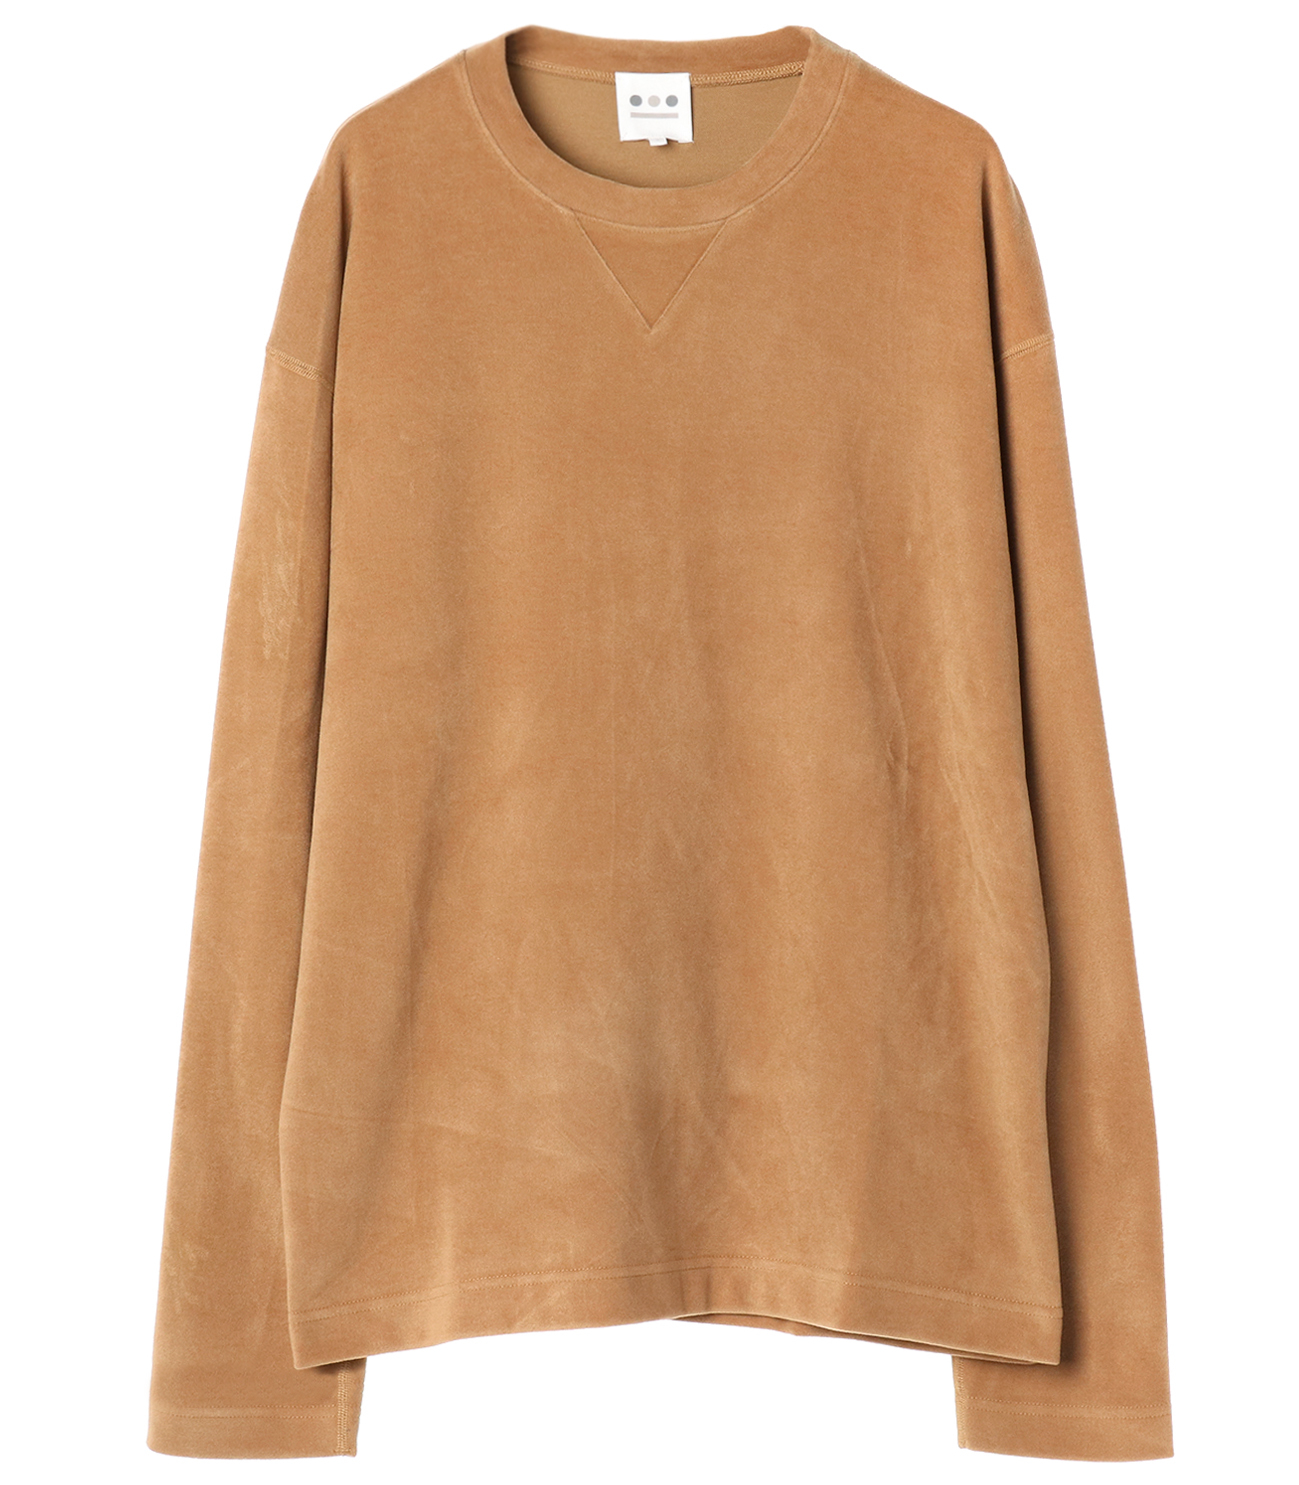 inter lock l/s crewneck po 詳細画像 camel 1